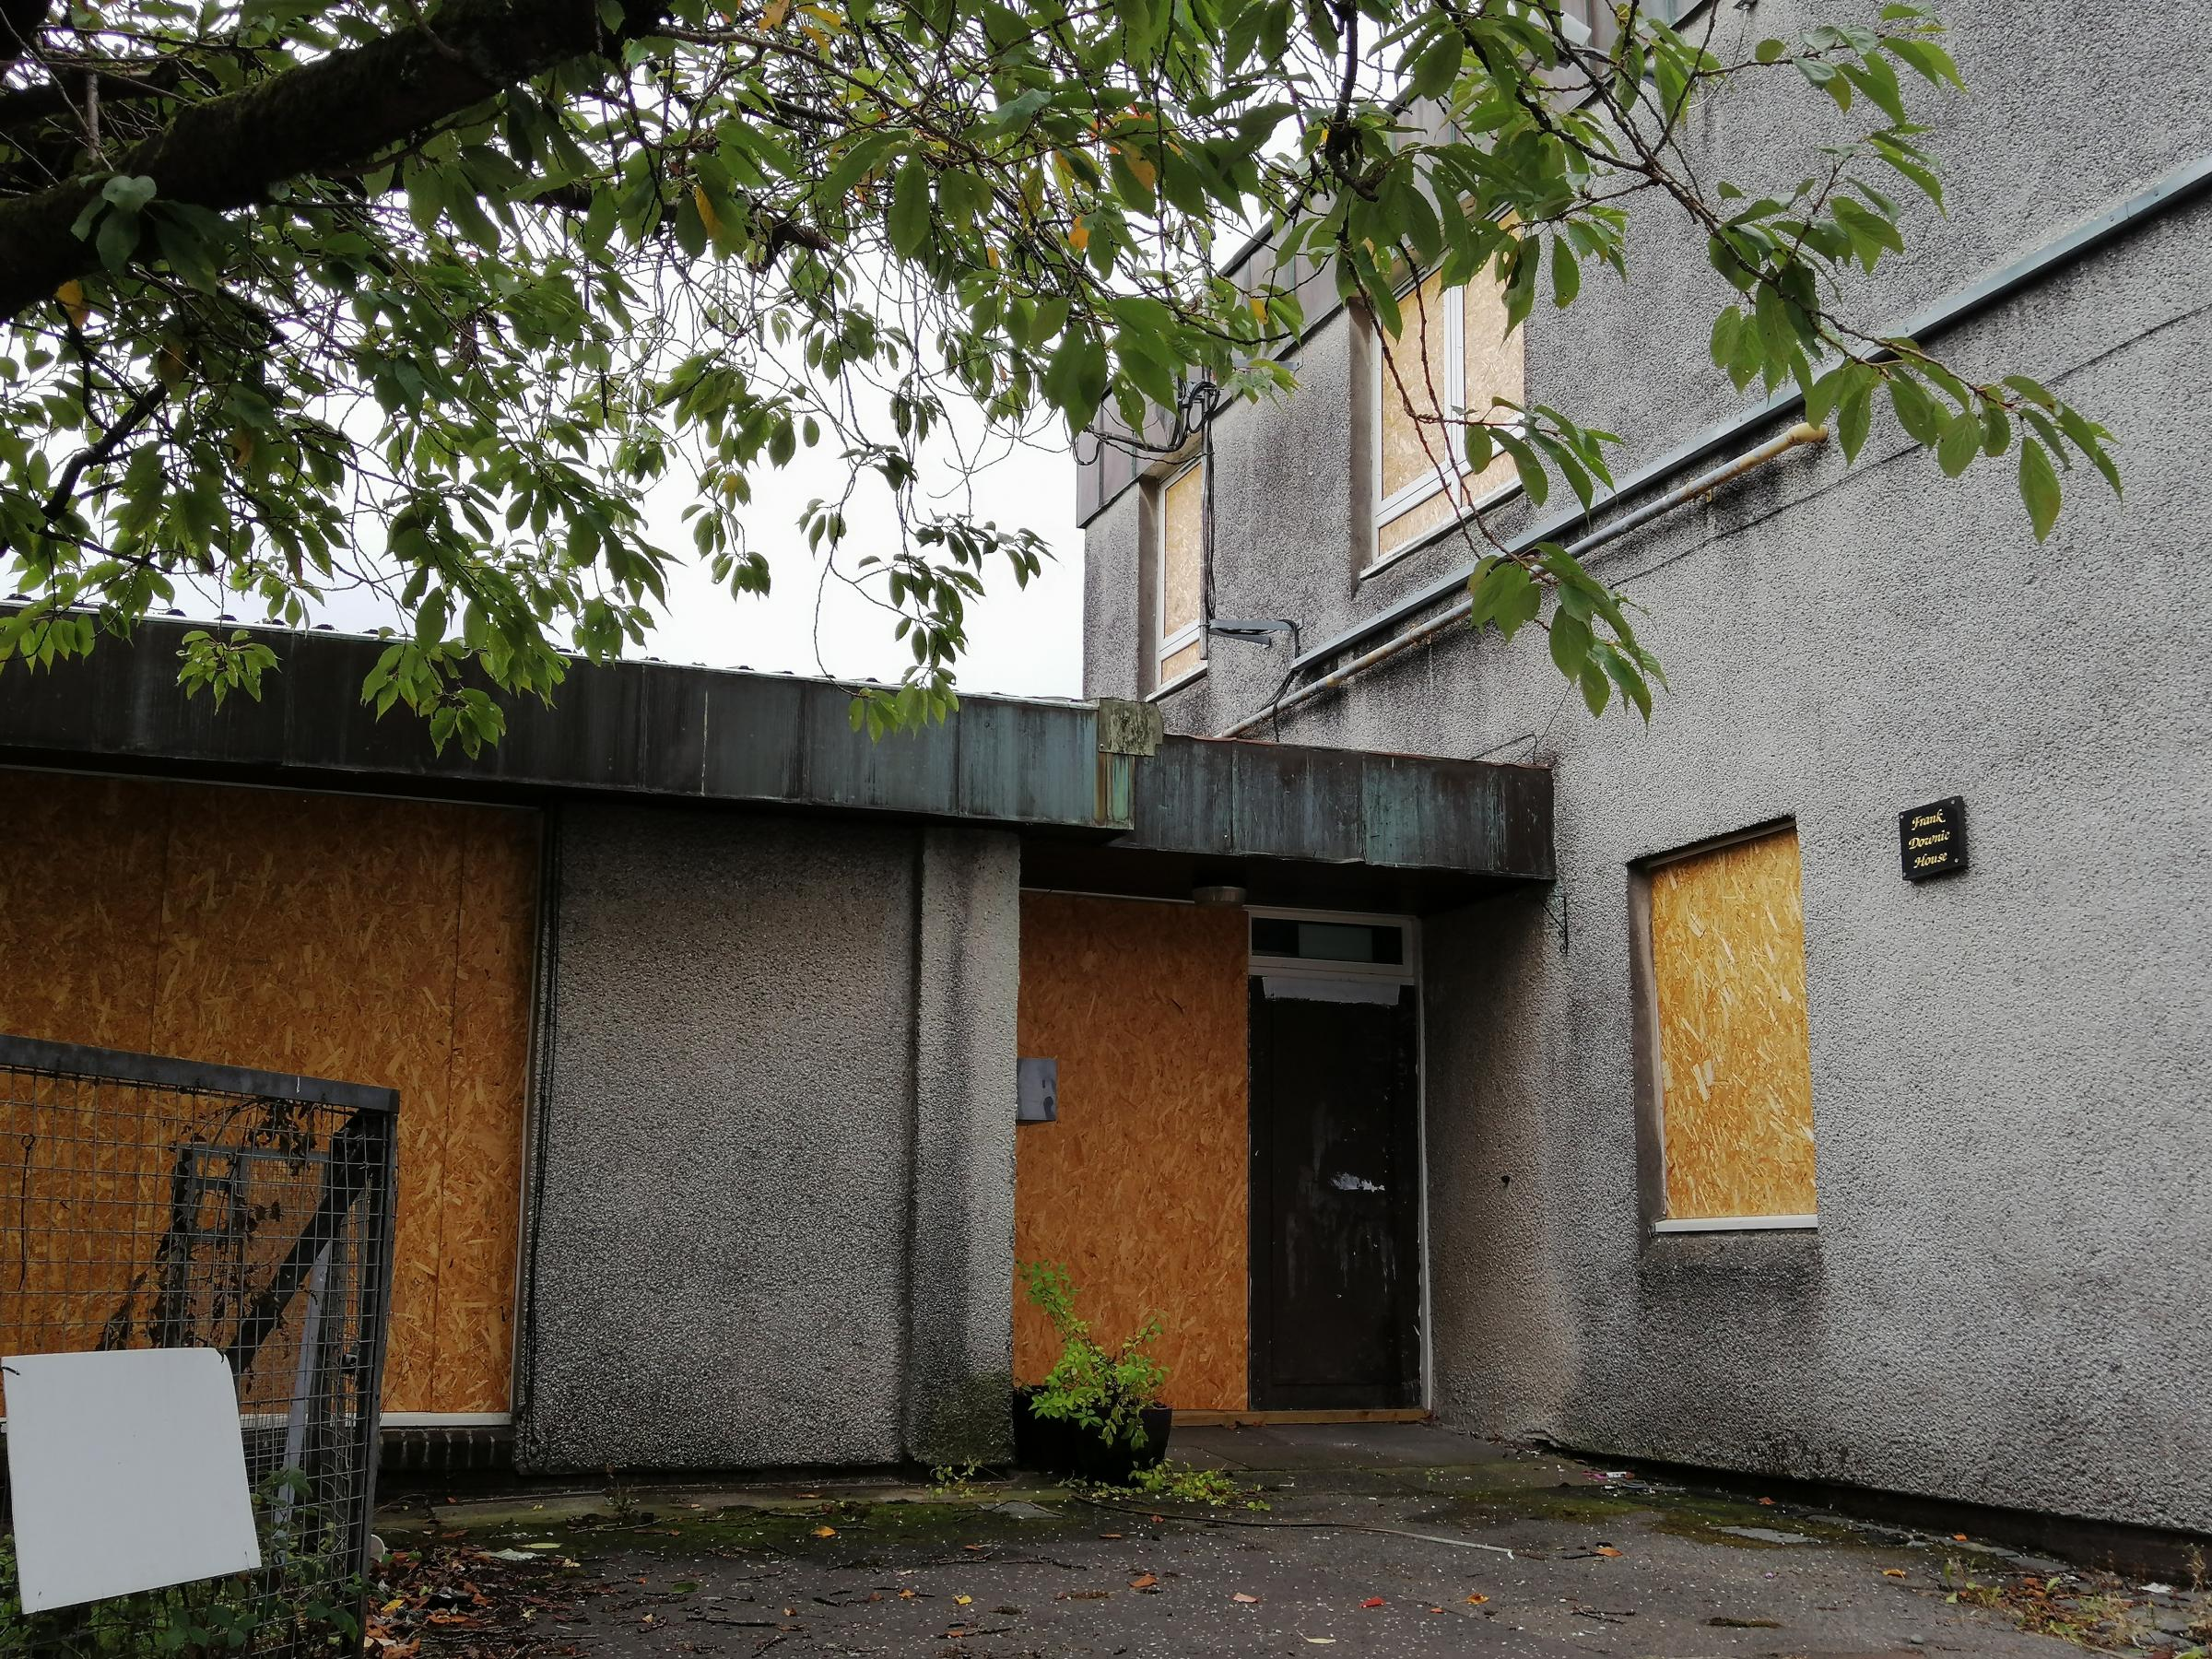 Frank Downie House: Sale of Dalmuir former care home is put on hold